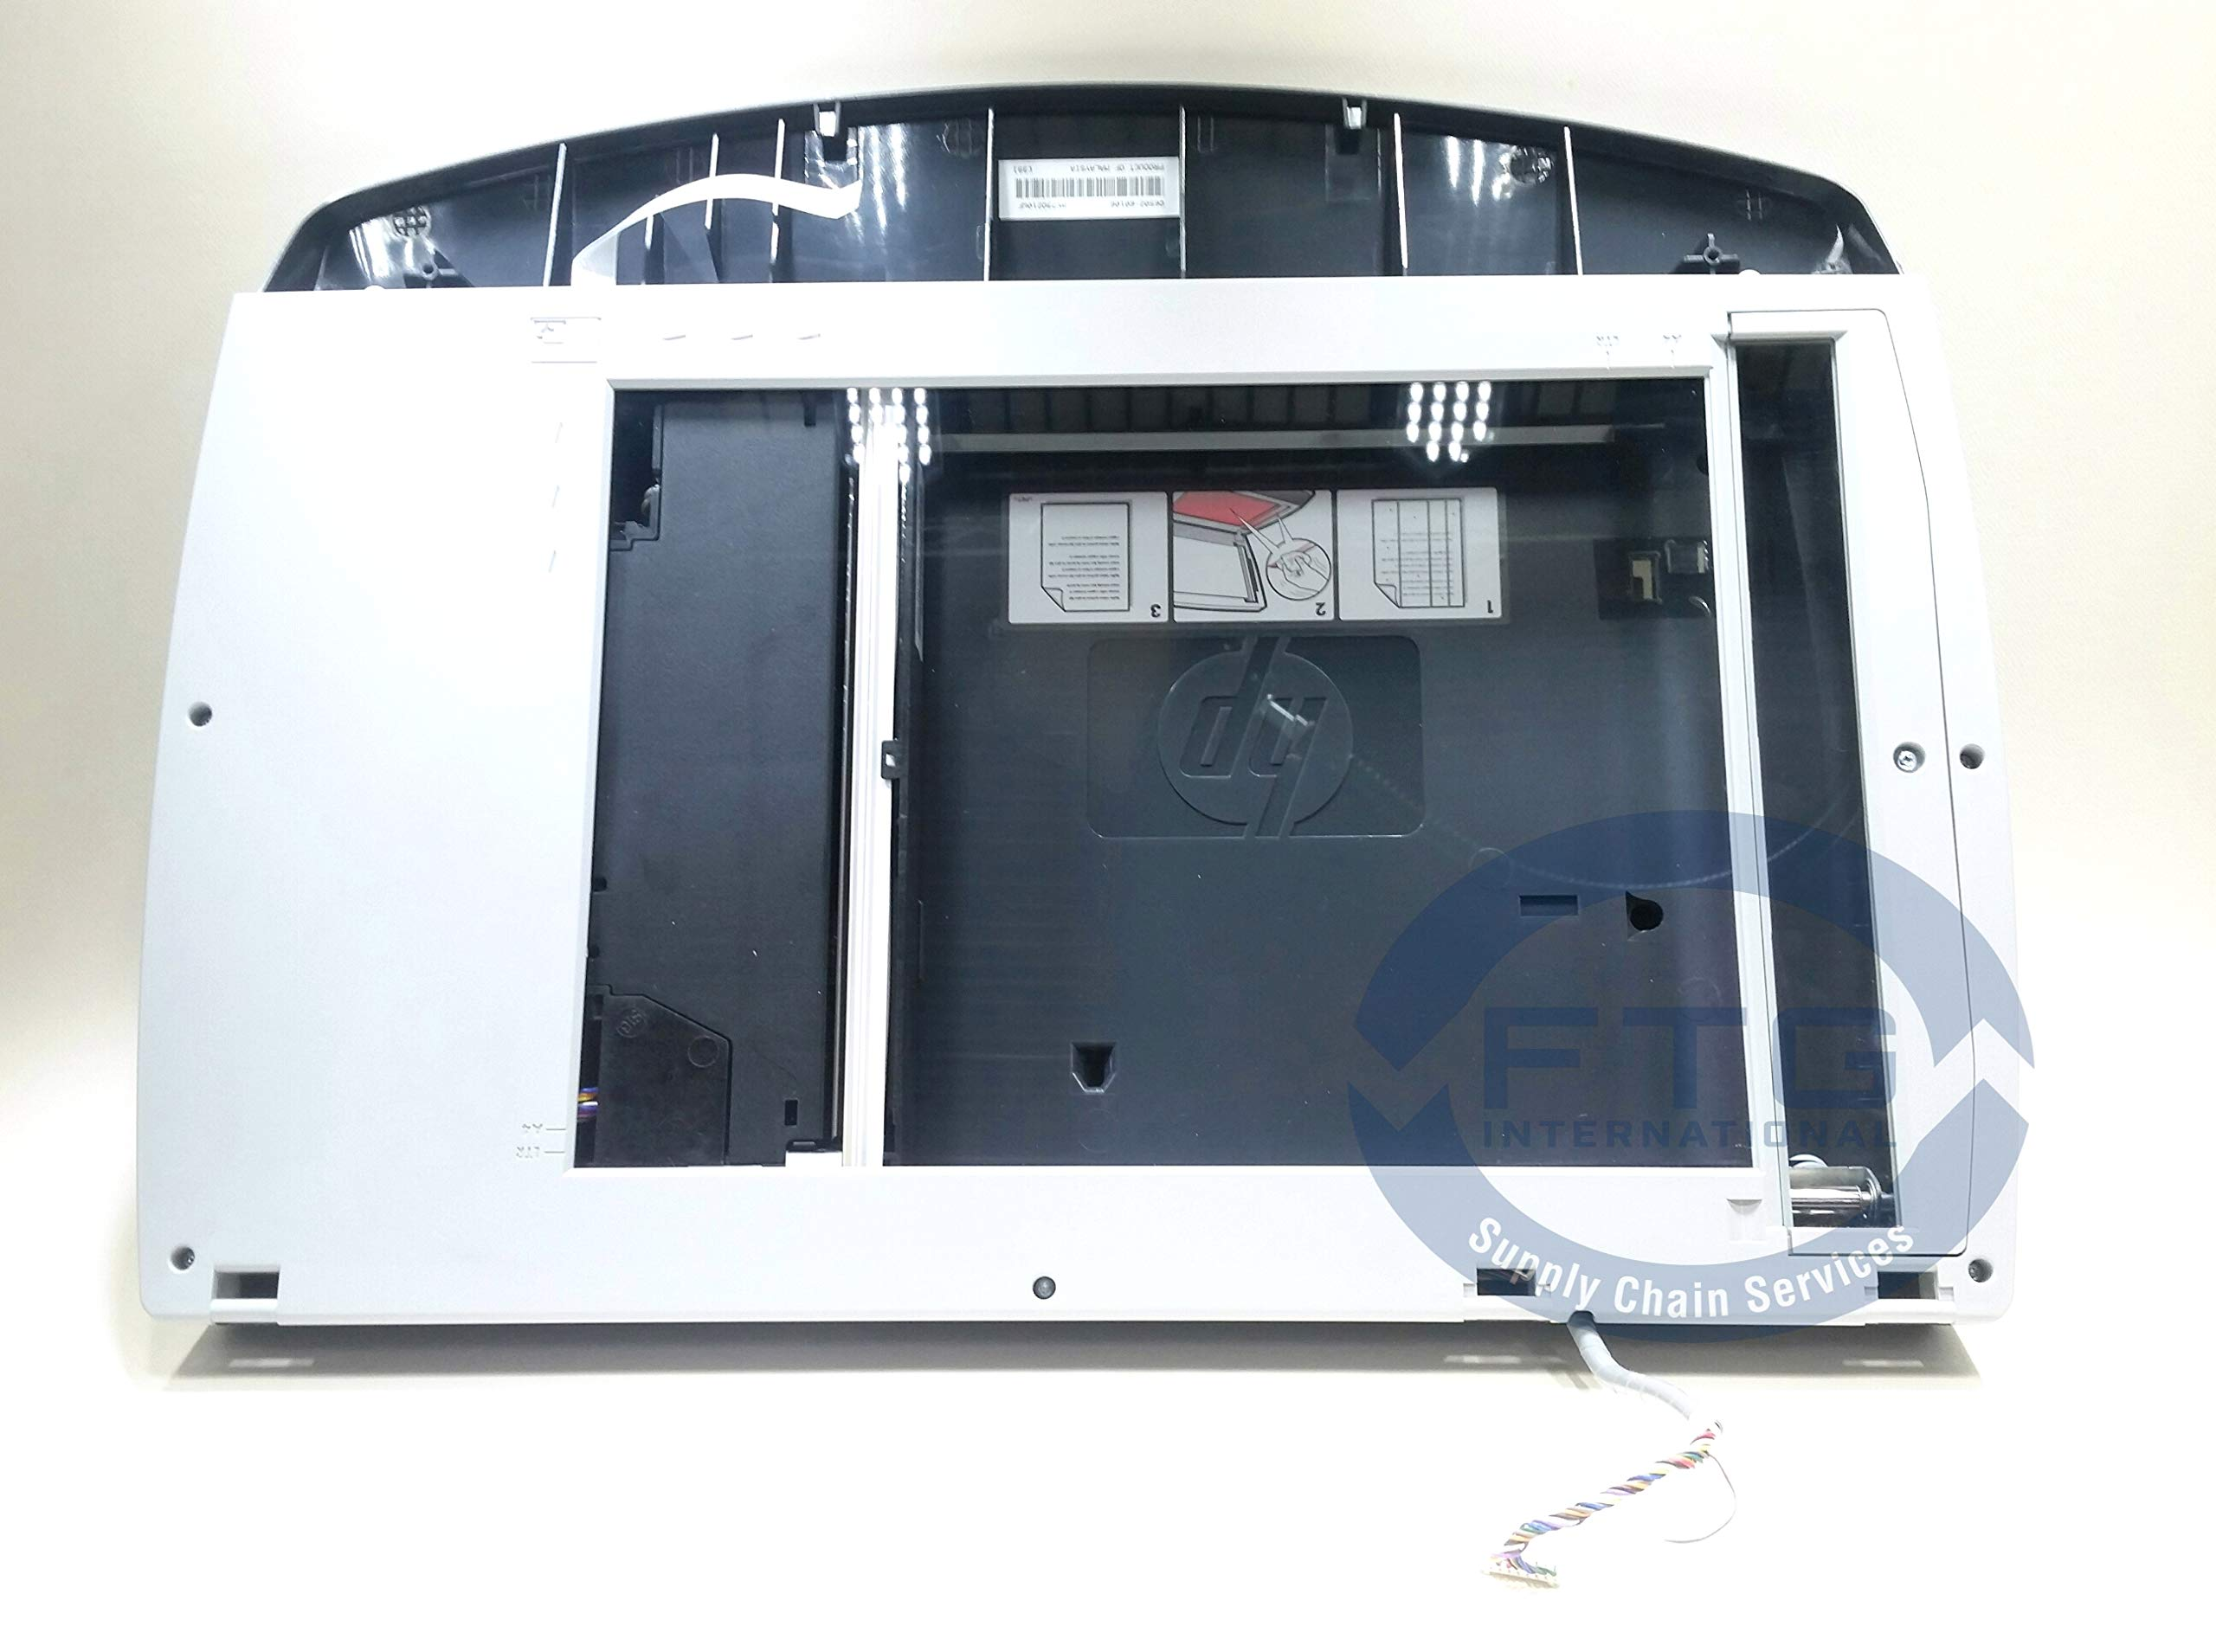 Q6502-60116 Flatbed Scanner Assembly for Laserjet 3052/3055 All-in-one - Include